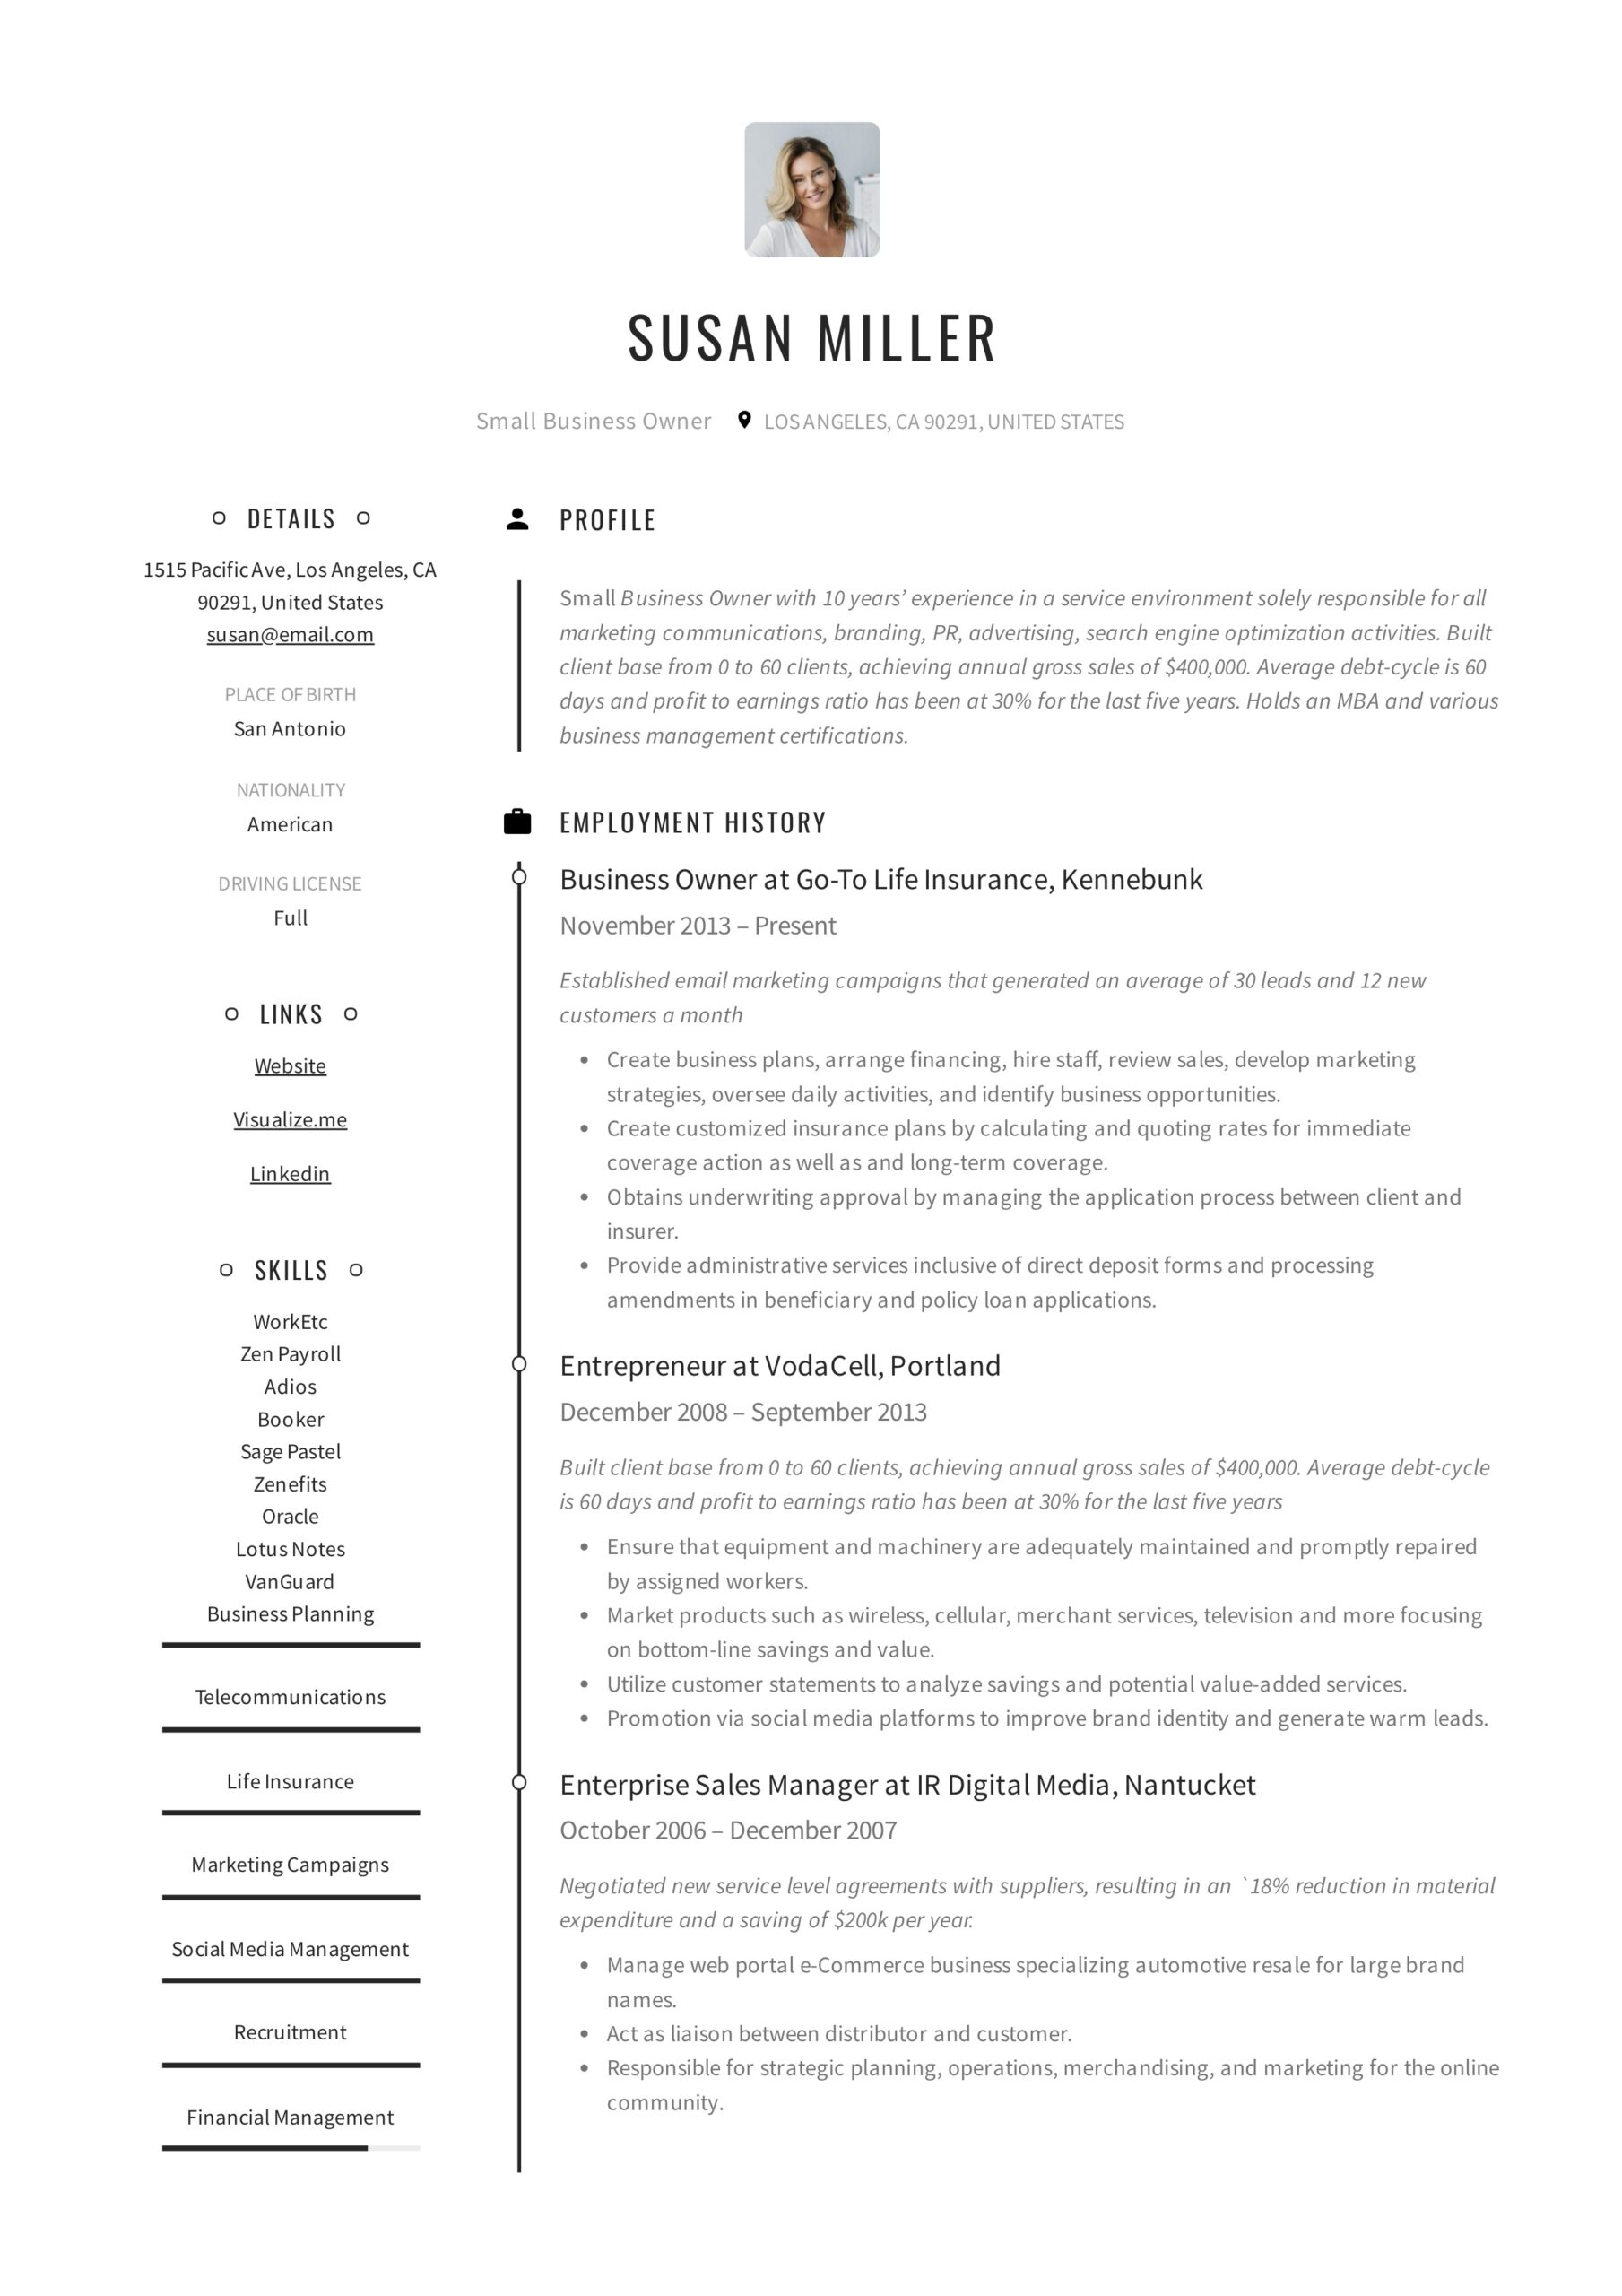 small business owner resume guide examples pdf entrepreneur example expertise skills job Resume Entrepreneur Resume Examples